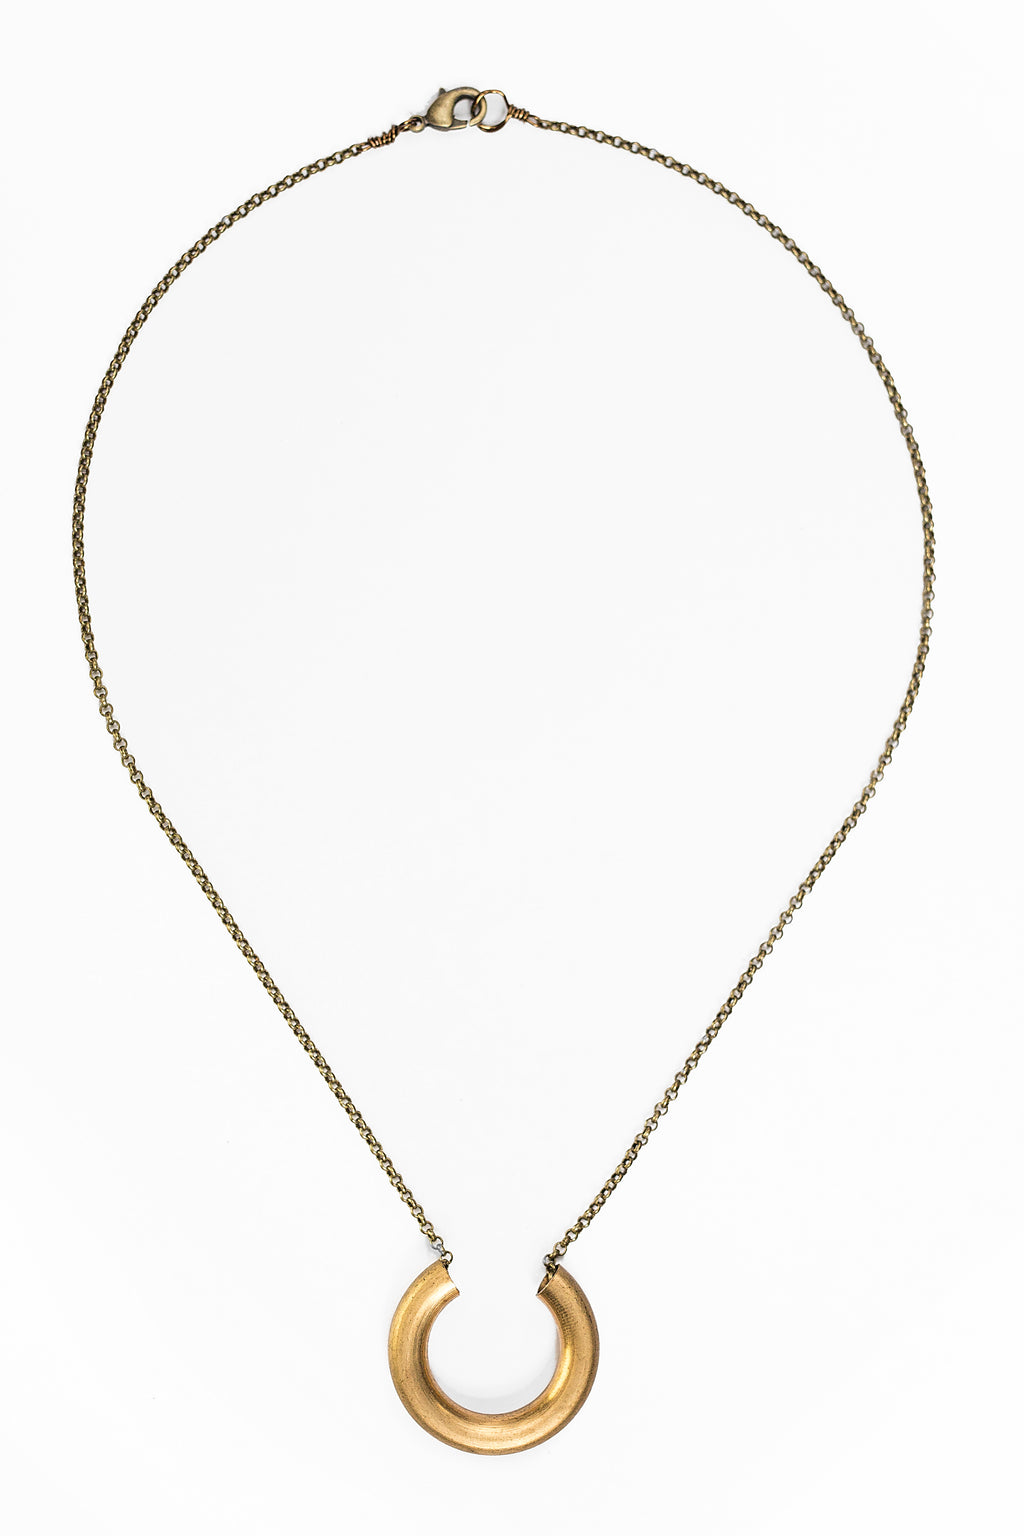 Brass Horseshoe Noodle Necklace